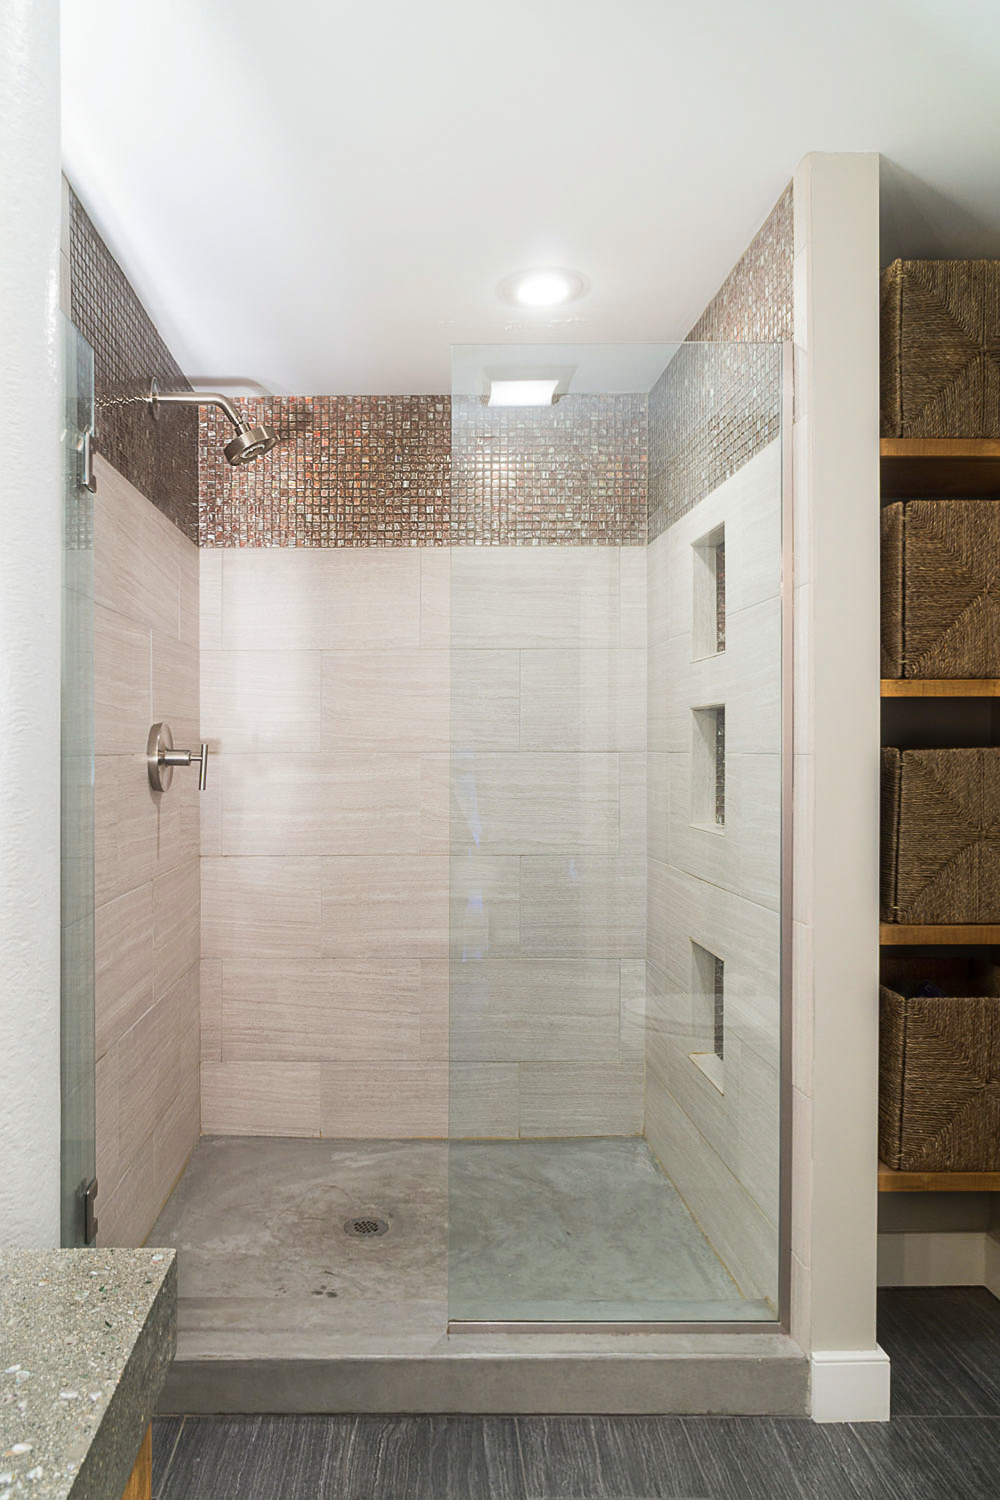 "The shower door is a½"" glass enclosure with brushed nickel frame and handle and the shower walls are Stratos silver with dove gray grout."